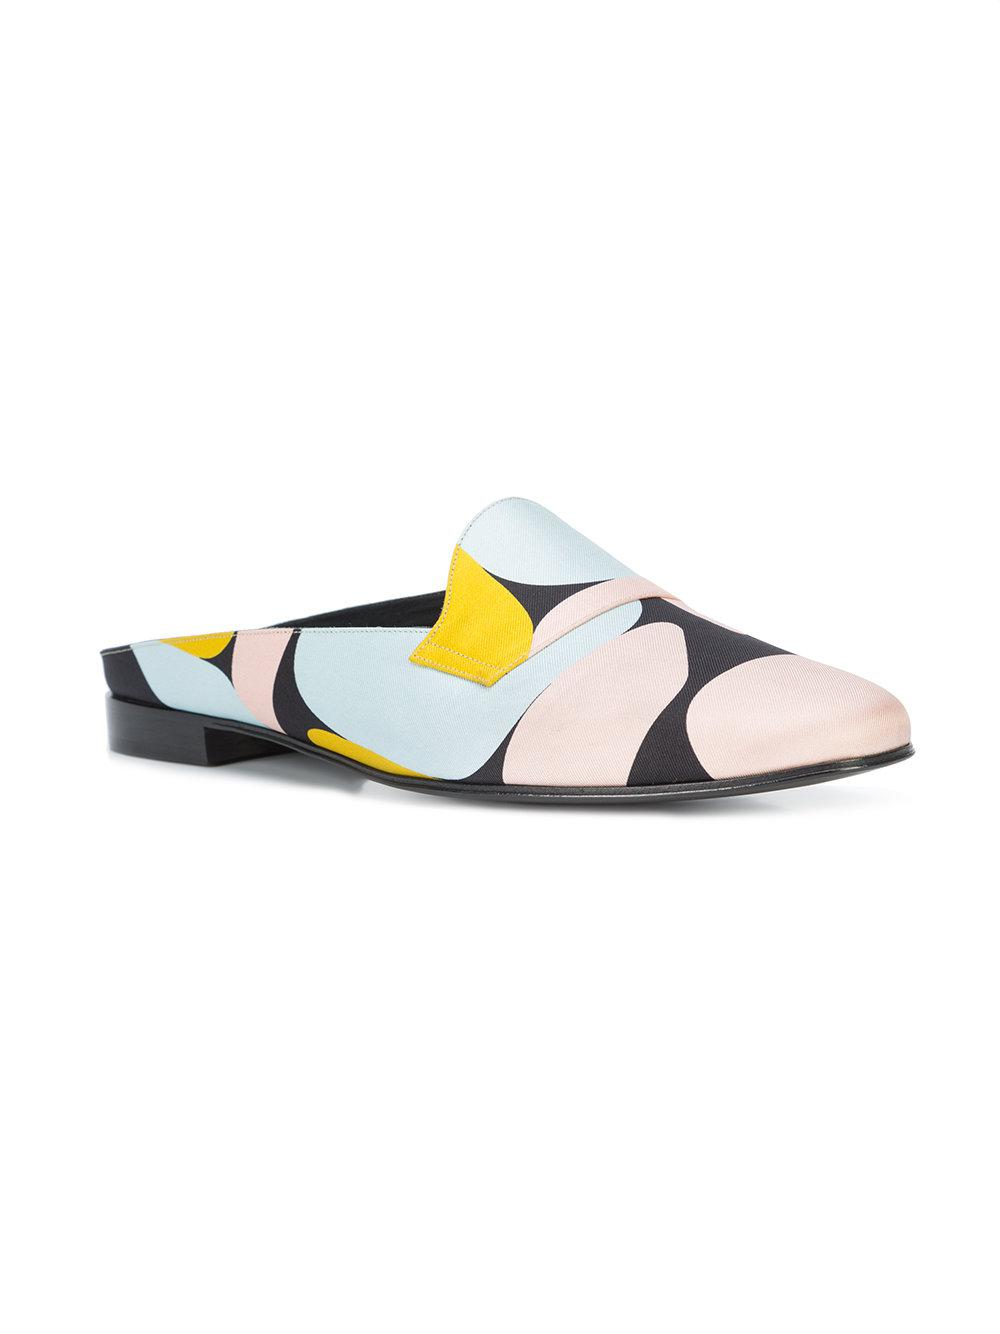 cheap for discount 3d4aa 2c378 pierre-hardy-Multicolour-Janco-Mules.jpeg